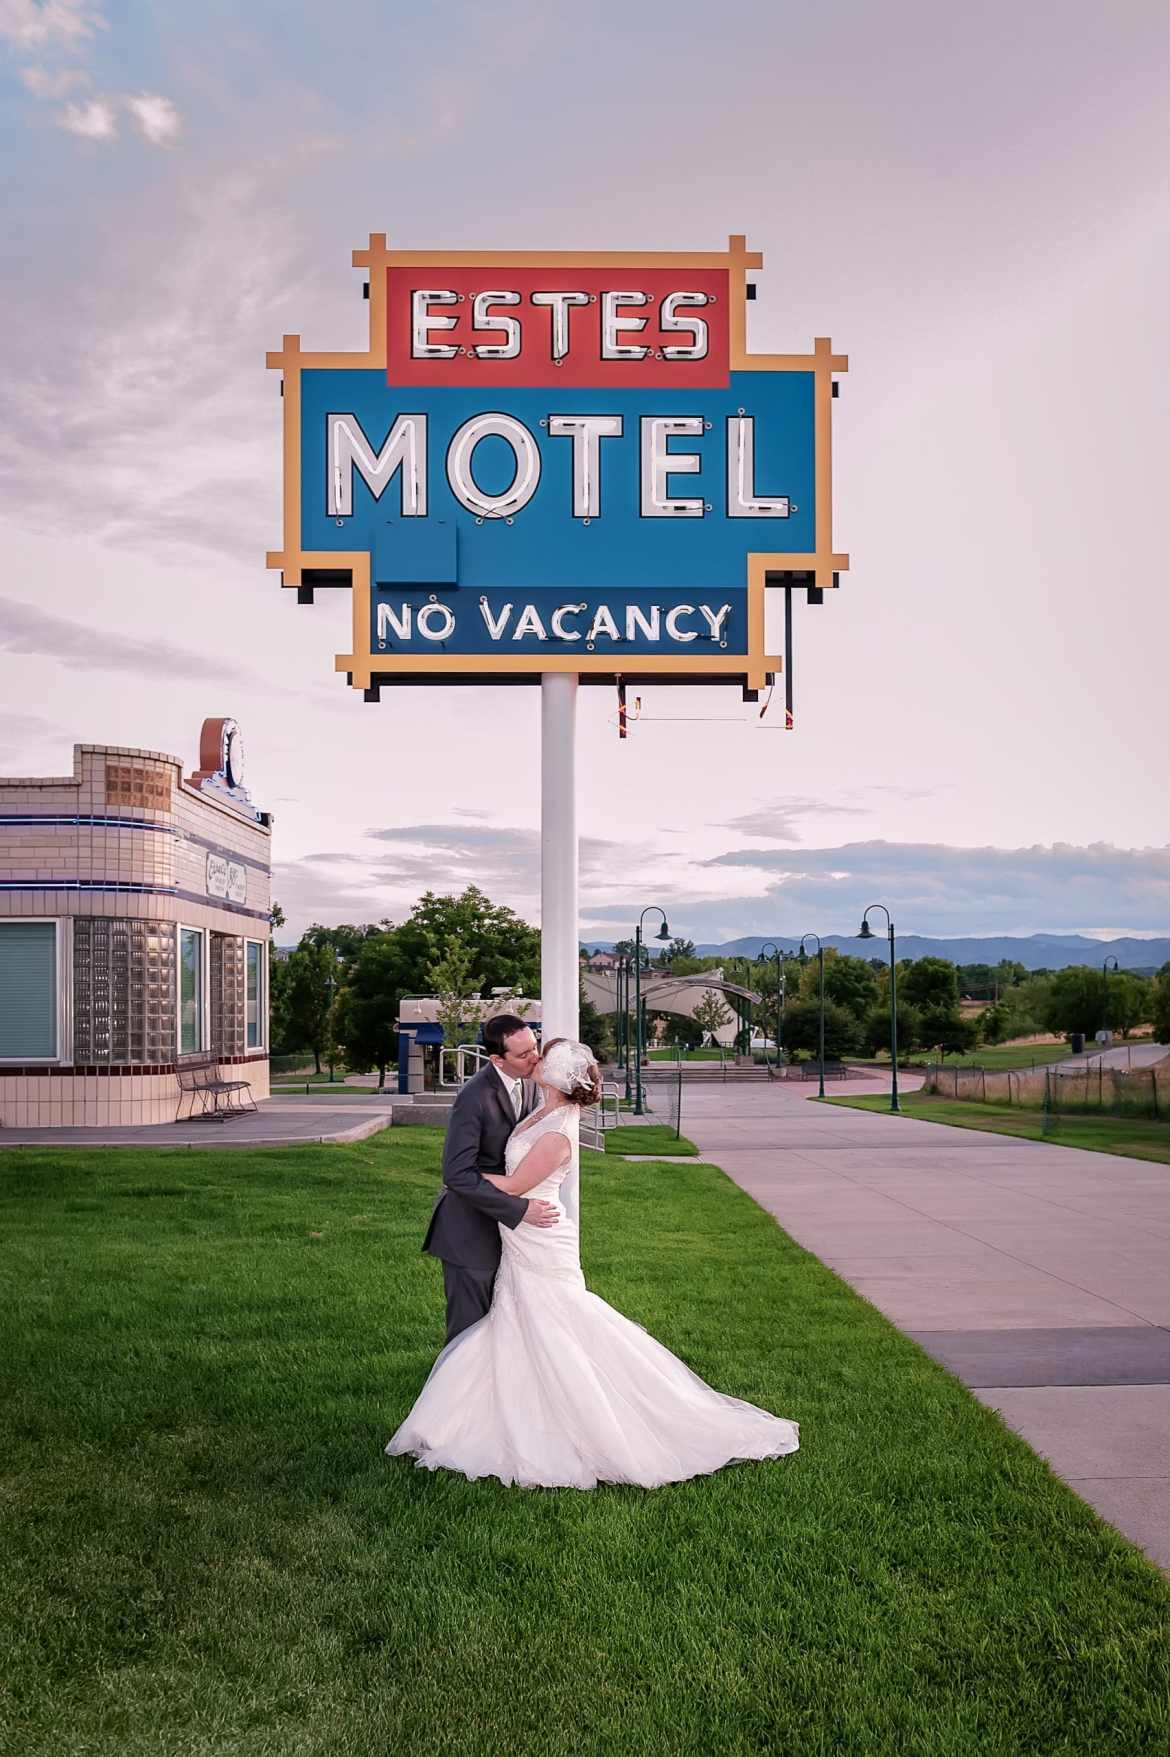 The wedding couple kisses under the historic Estes Motel Sign at the Lakewood Heritage Center that states: No Vacancy.